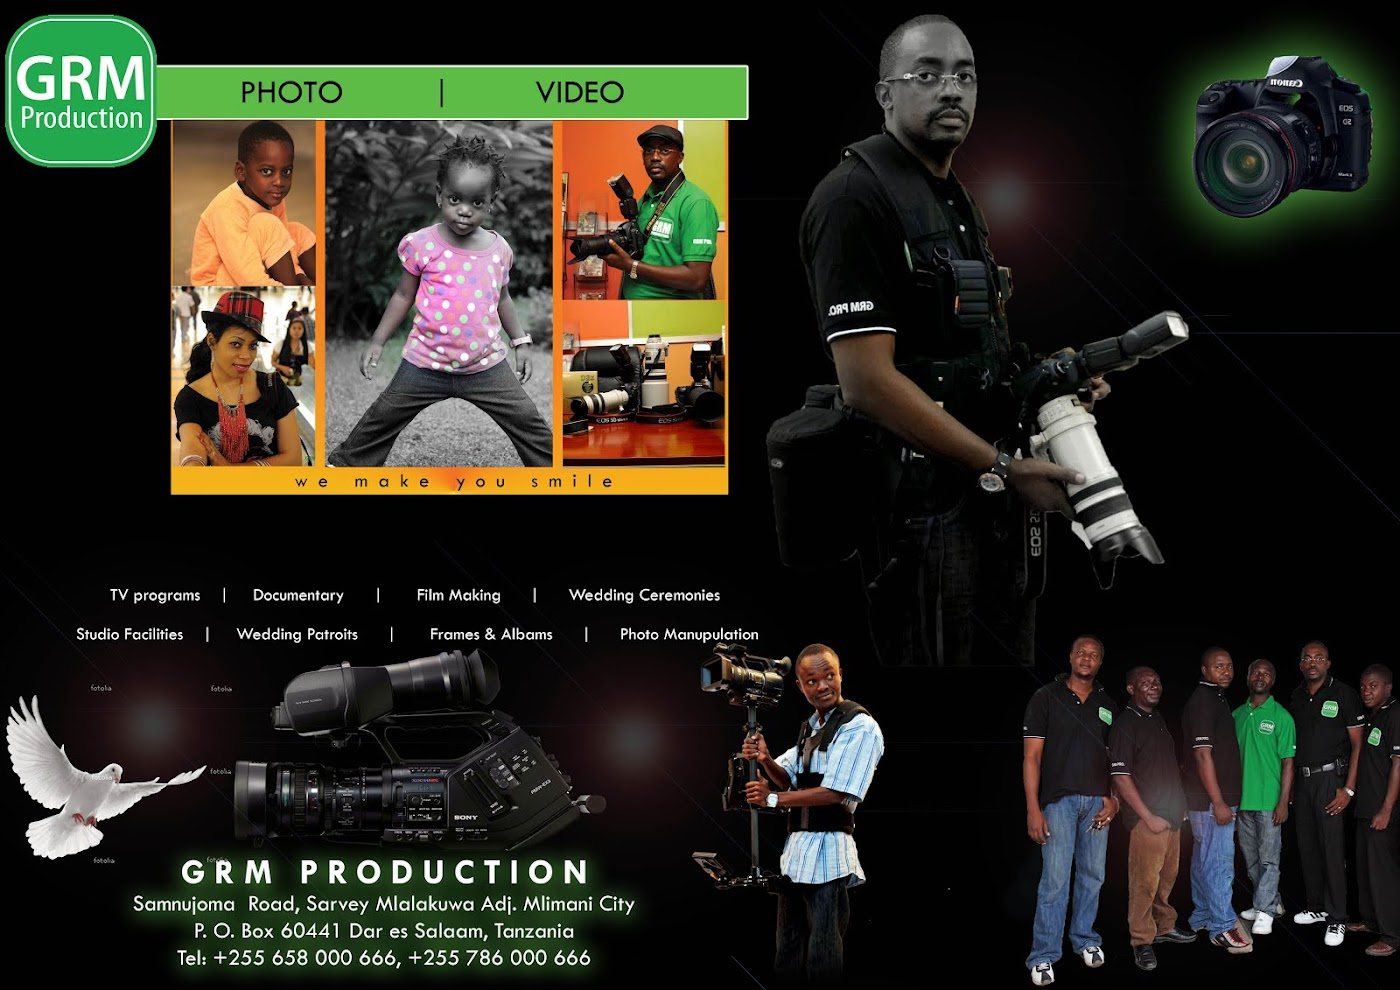 Grm Production